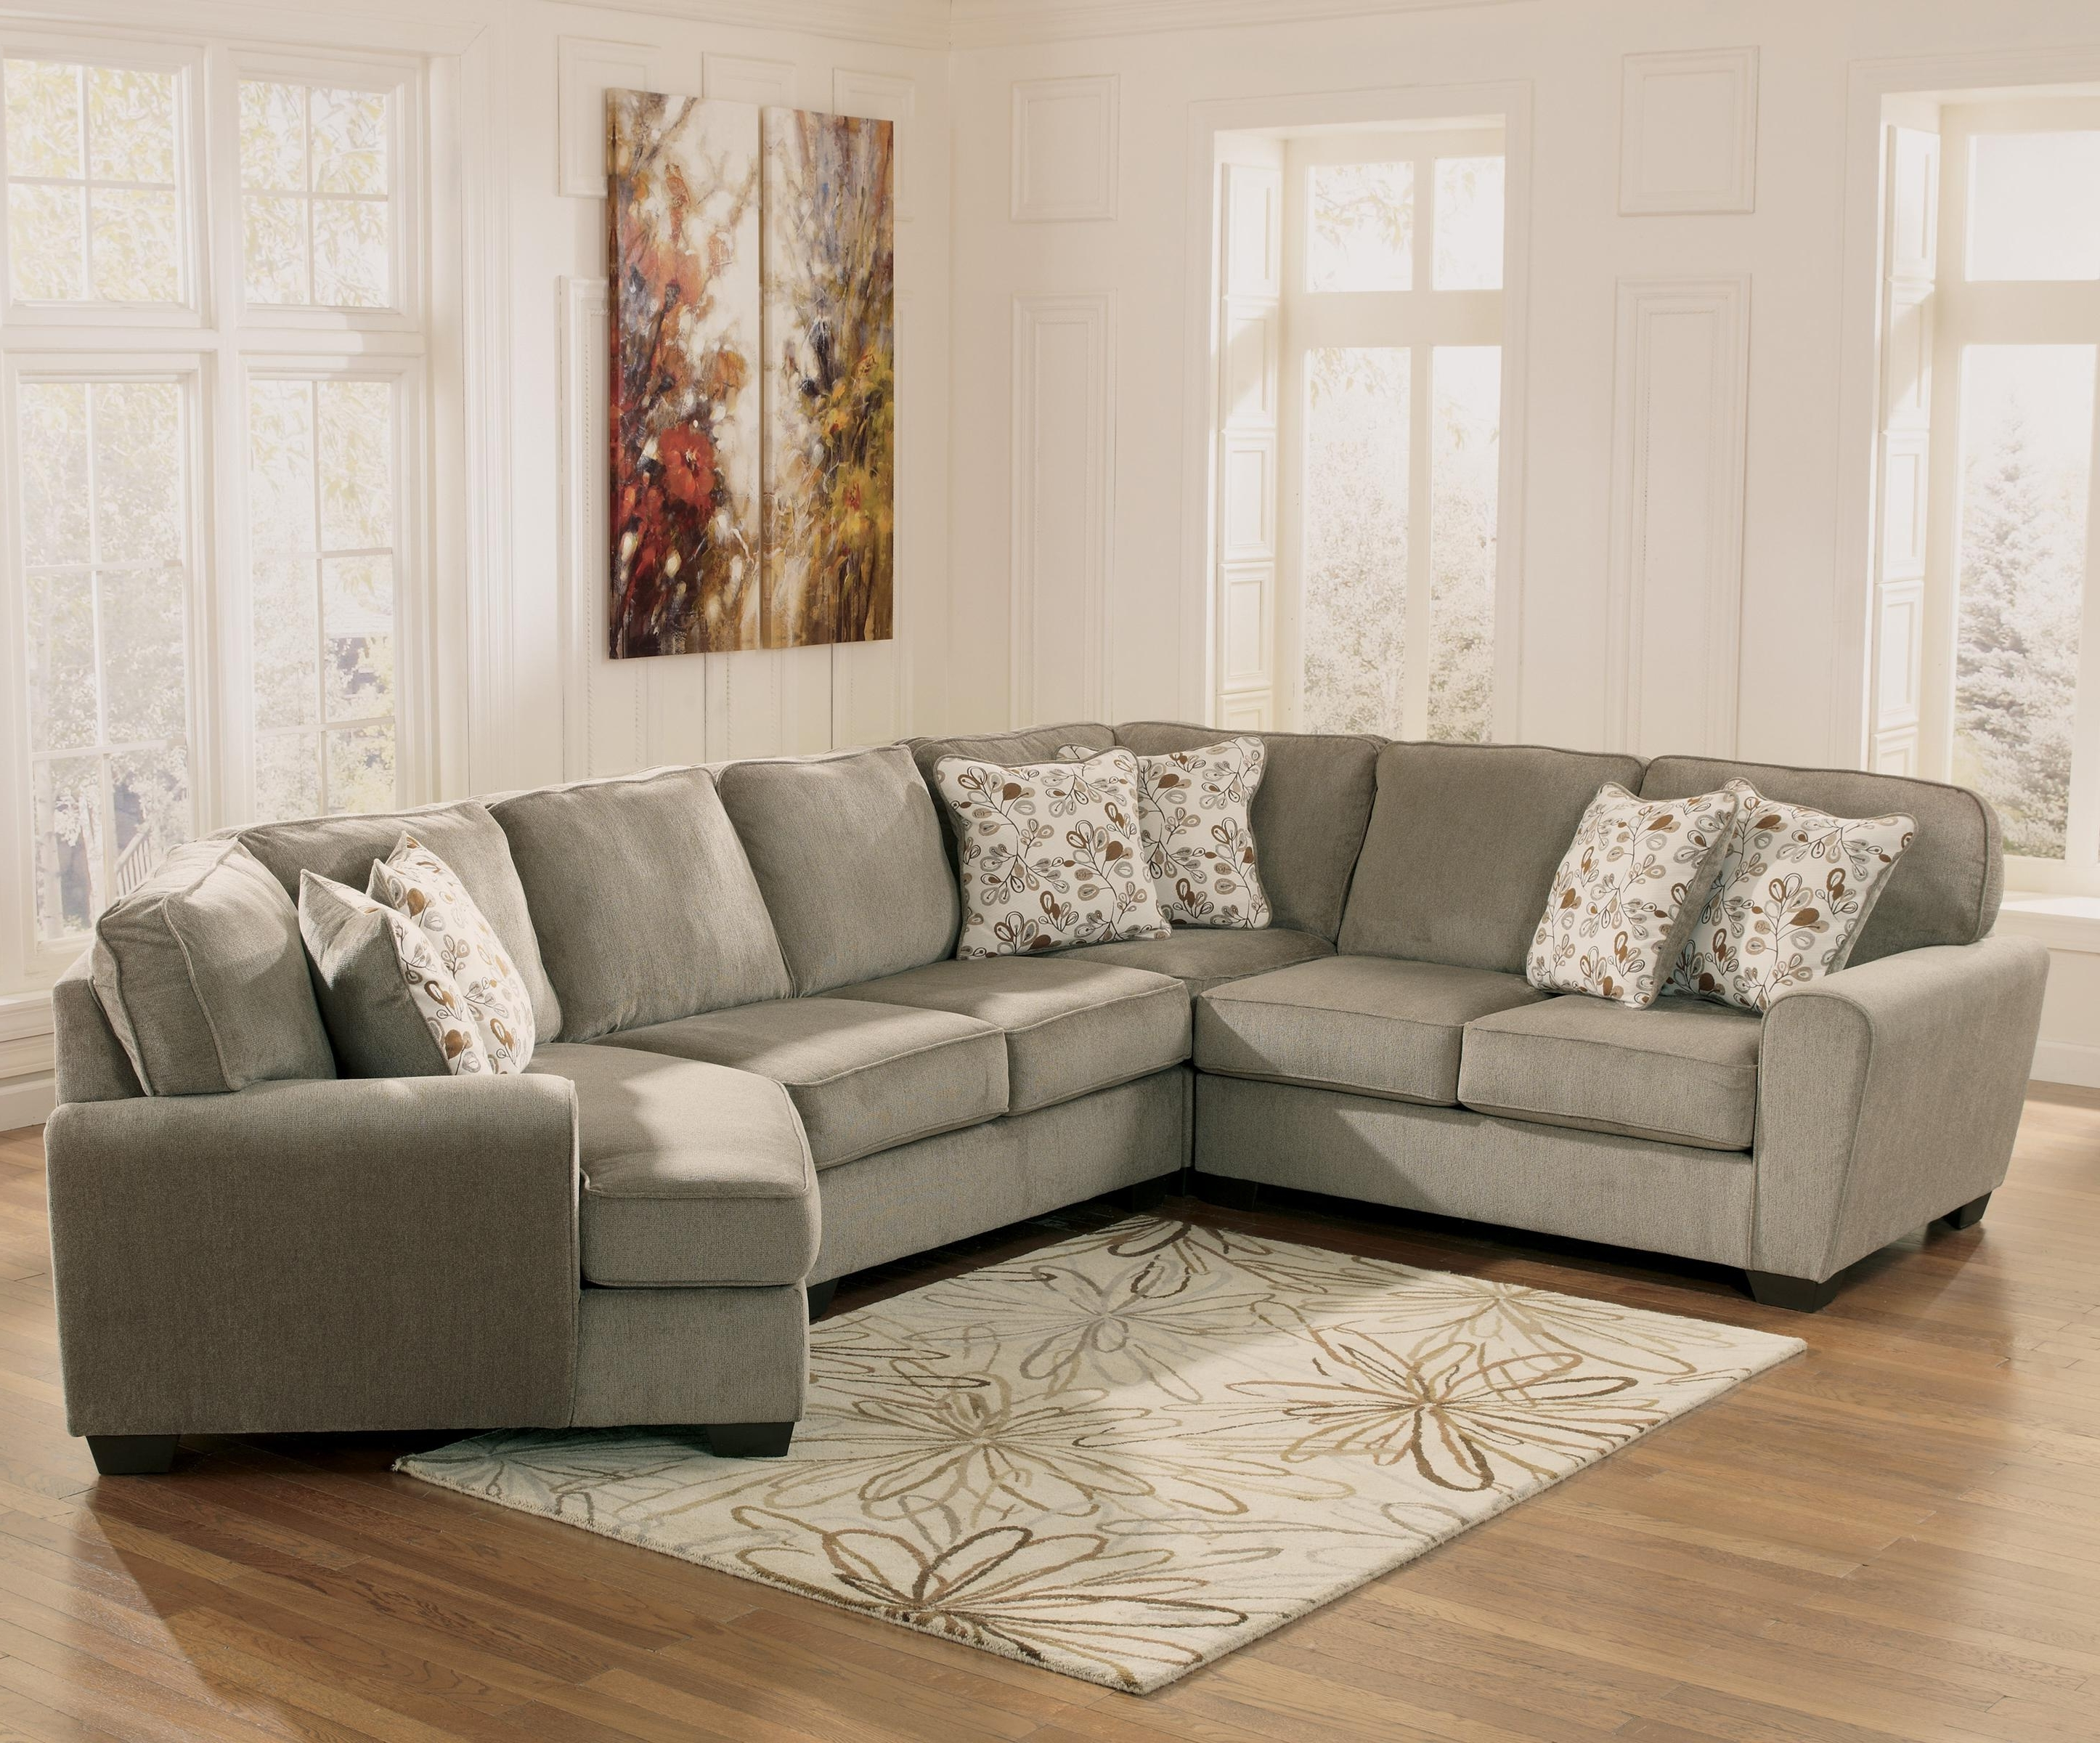 Sofa Within Trendy Cuddler Sectional Sofas (View 2 of 15)